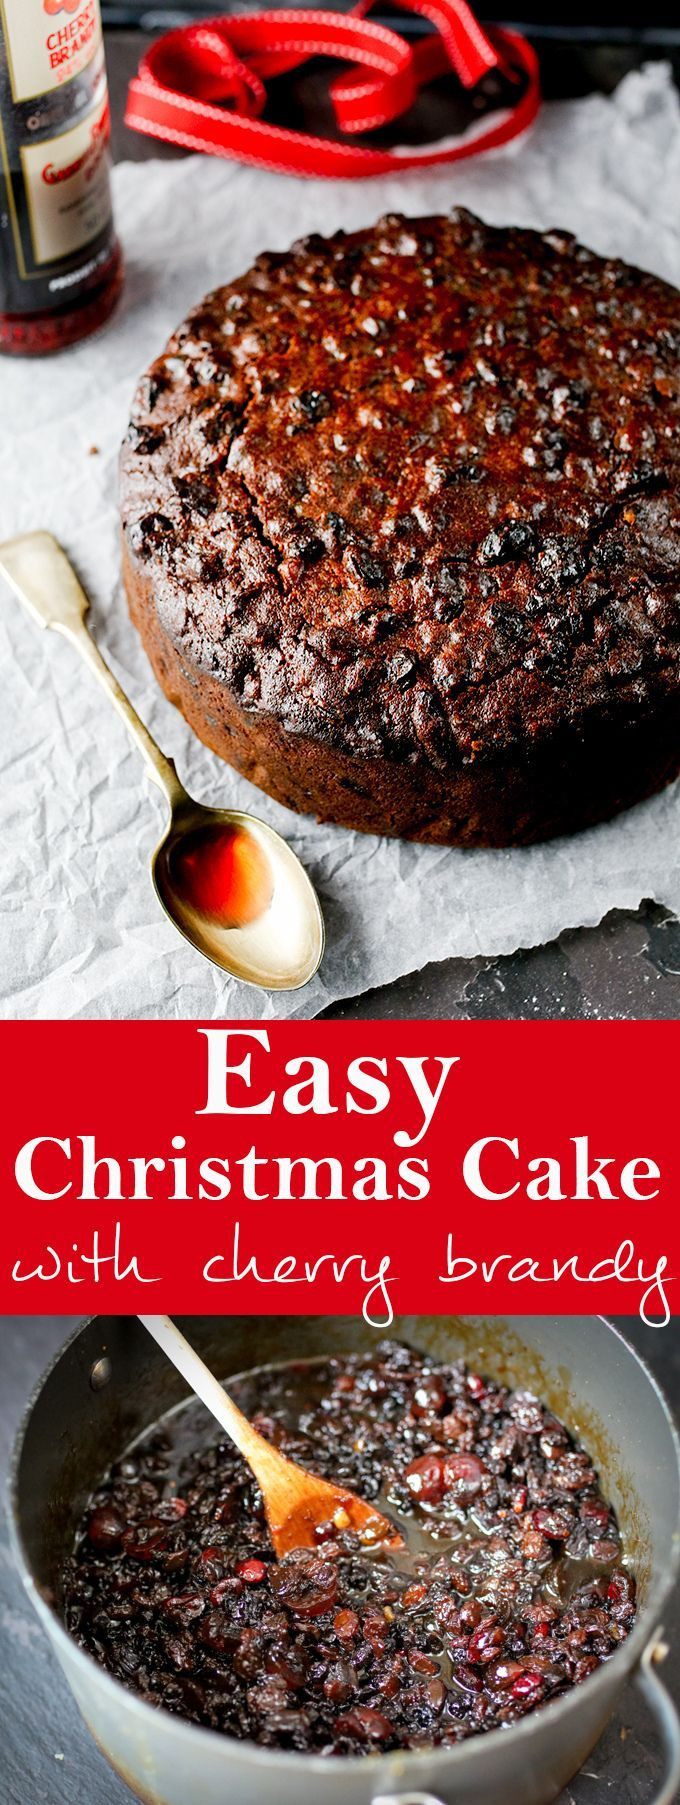 Easy Christmas Cake Recipe  17 Best Christmas Fruit Ideas on Pinterest